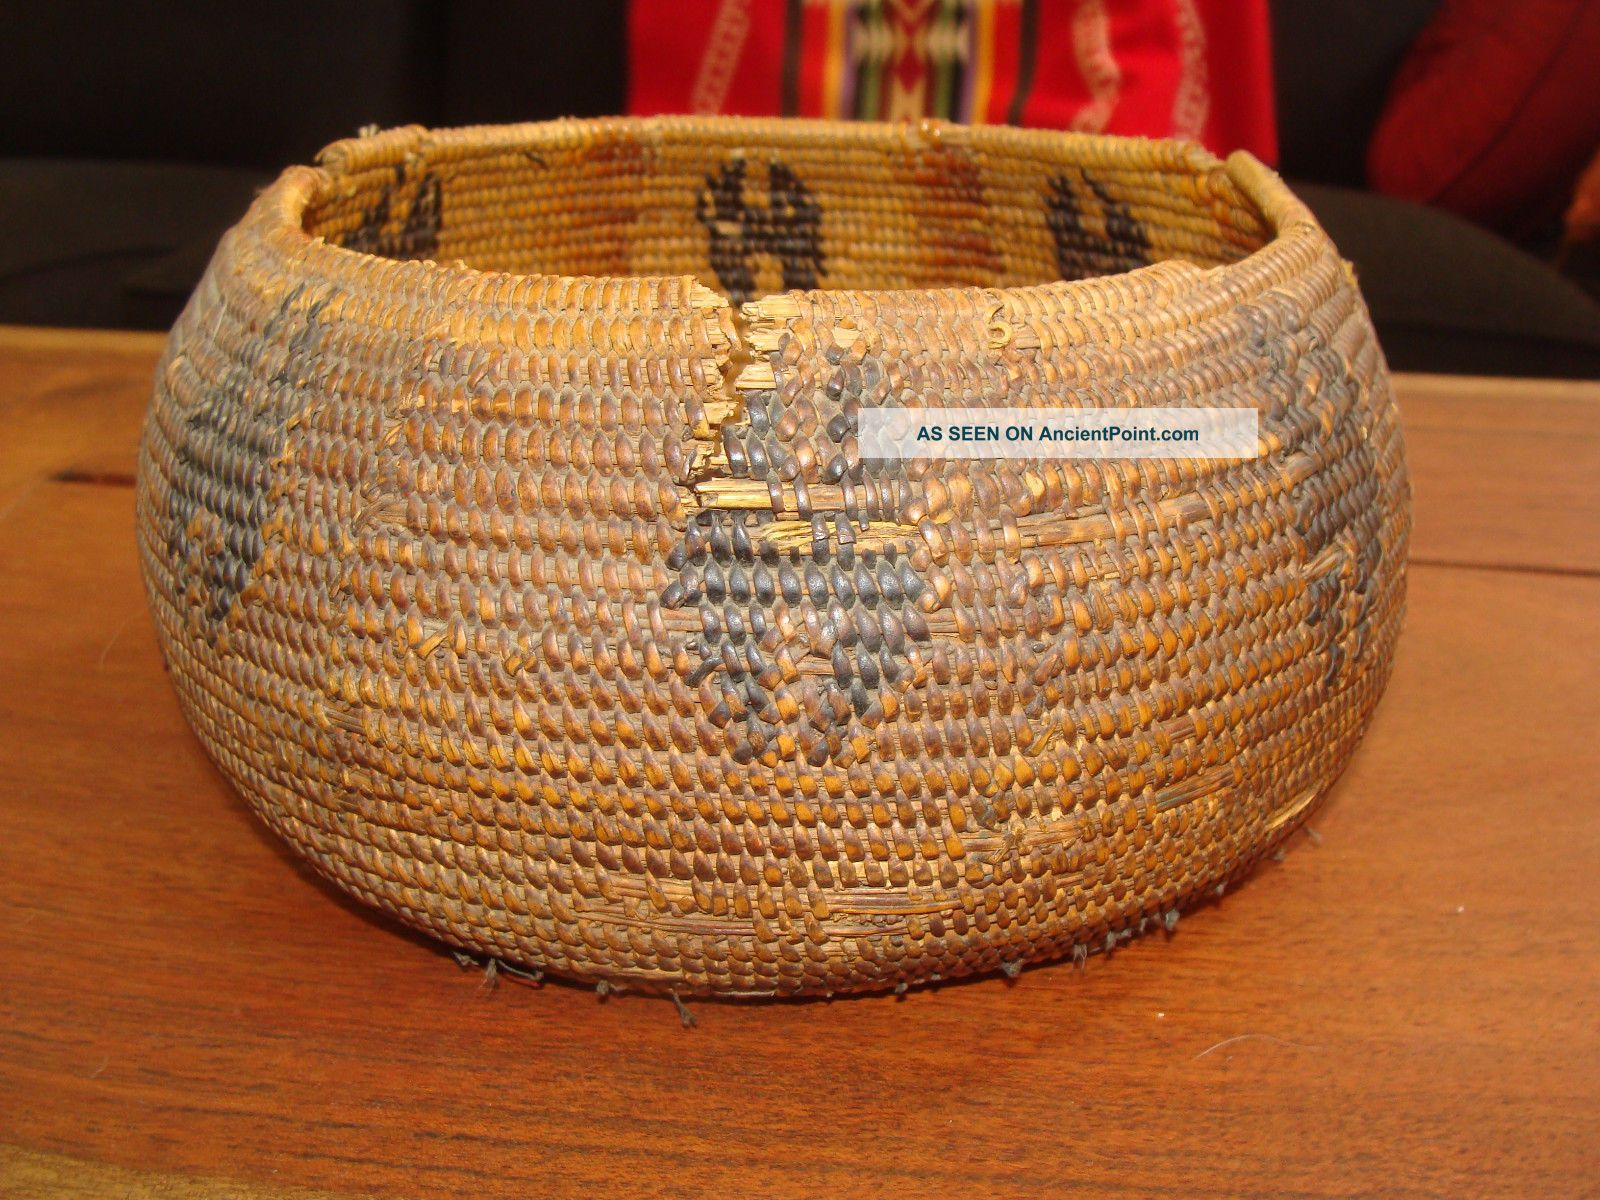 basket essay indian pomo A history of american indian pottery karok, miwok, pomo, and mono cultures of california were great basket makers in an essay in the.